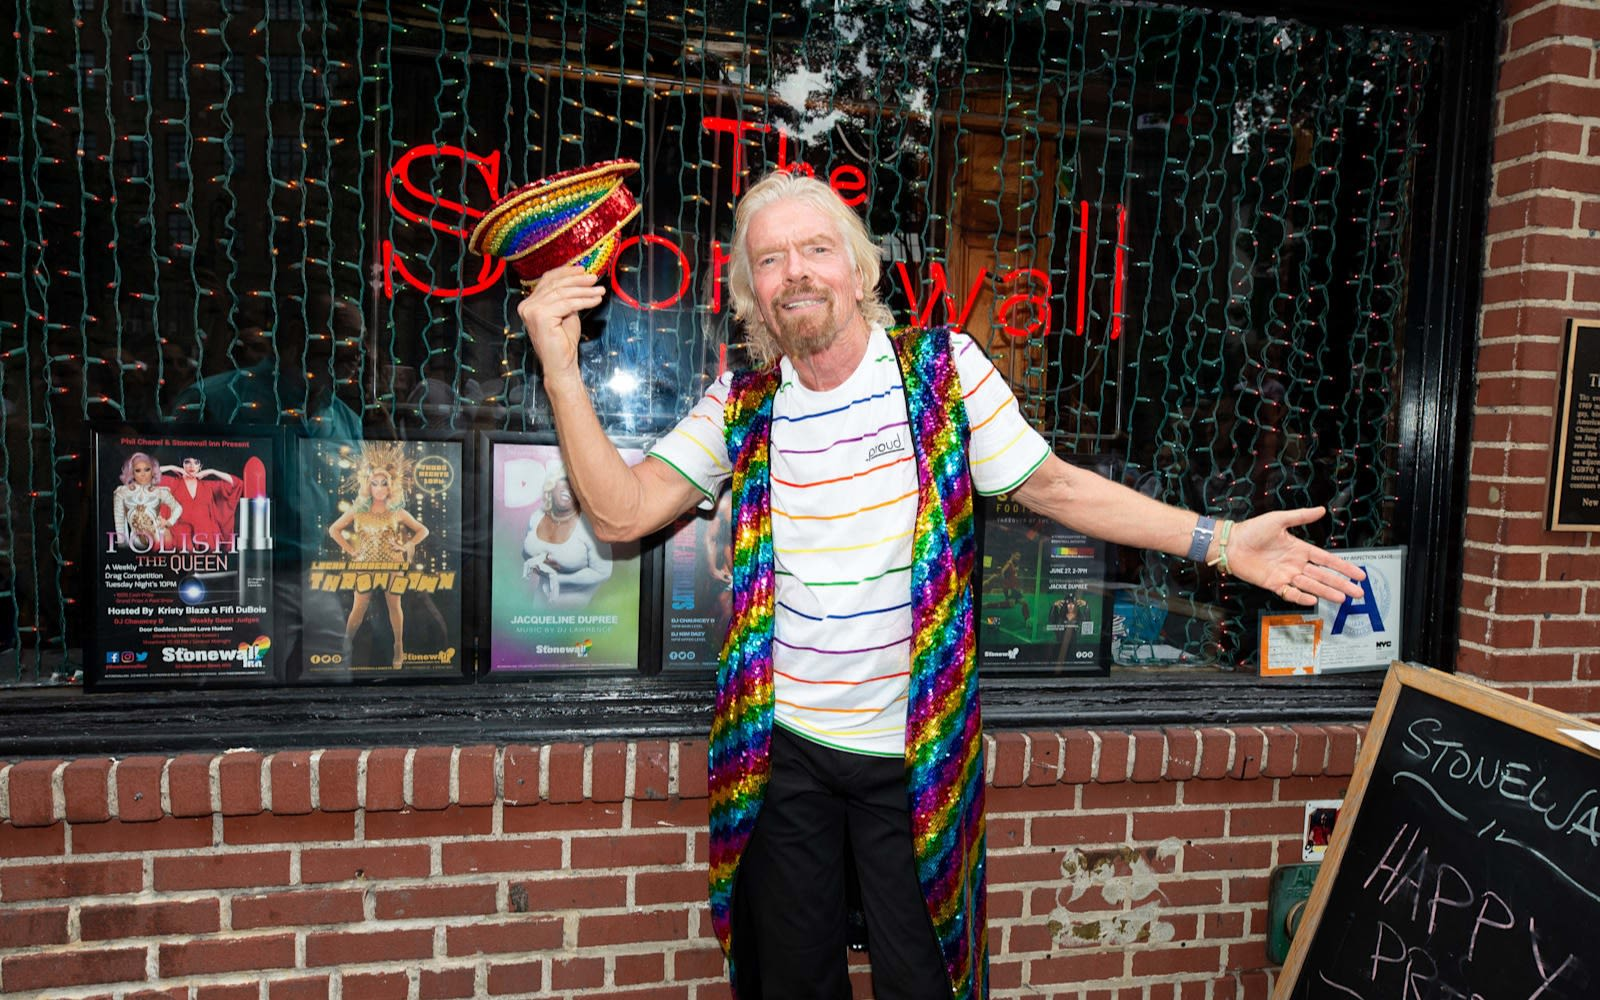 Richard Branson outside The Stonewall